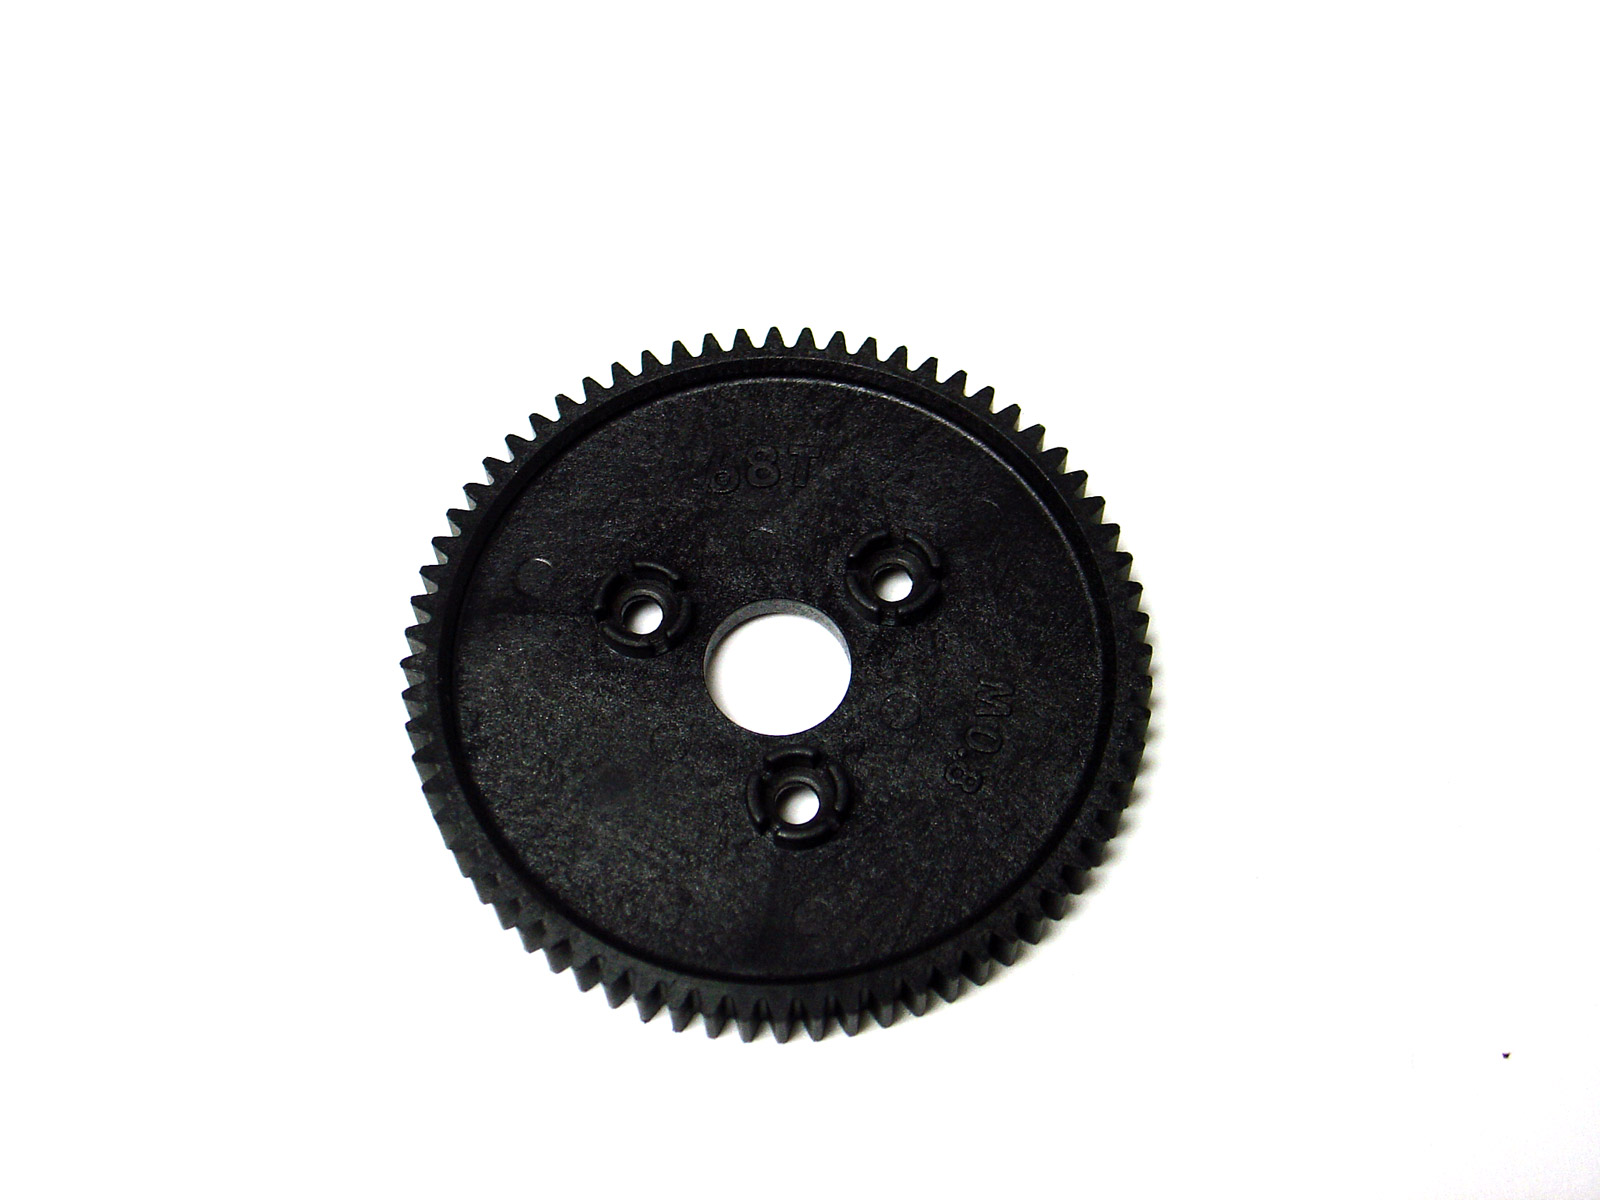 The standard plastic 68 tooth spur gear with 0 8 metric pitch for the Traxxas Summit